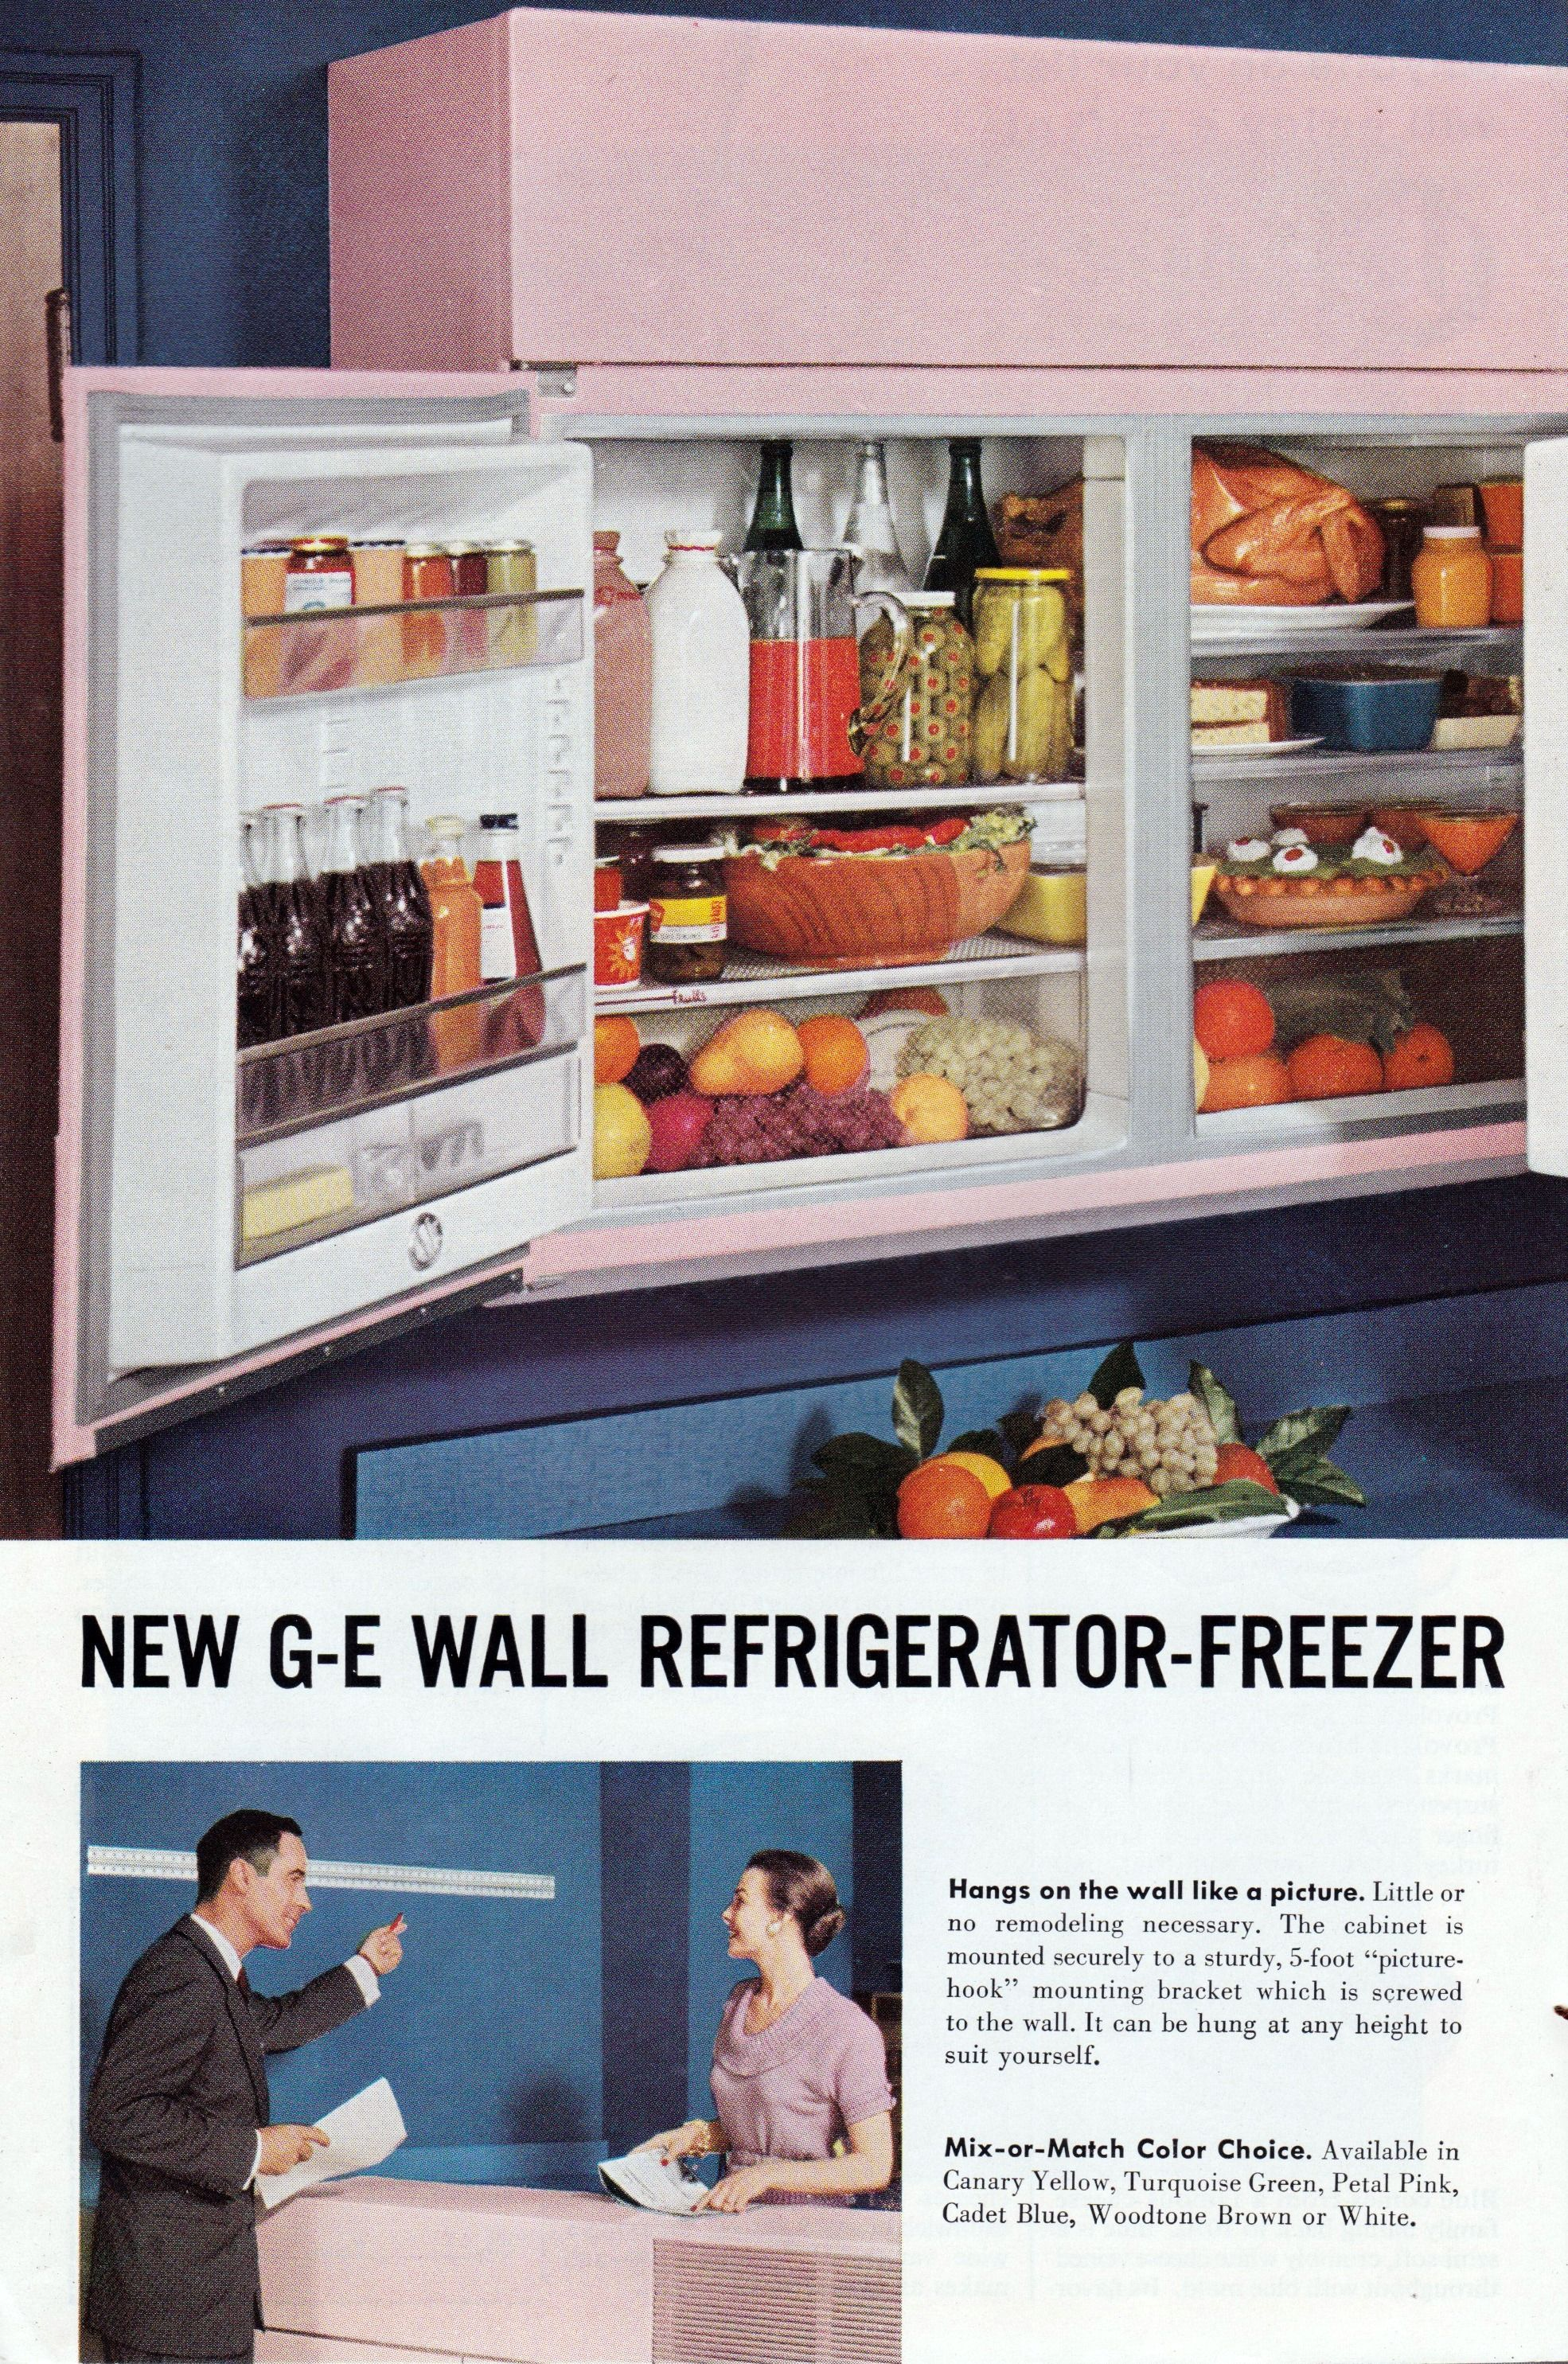 G E Wall Refrigerator 1950s Refrigerator Freezer General Electric Retro Kitchen